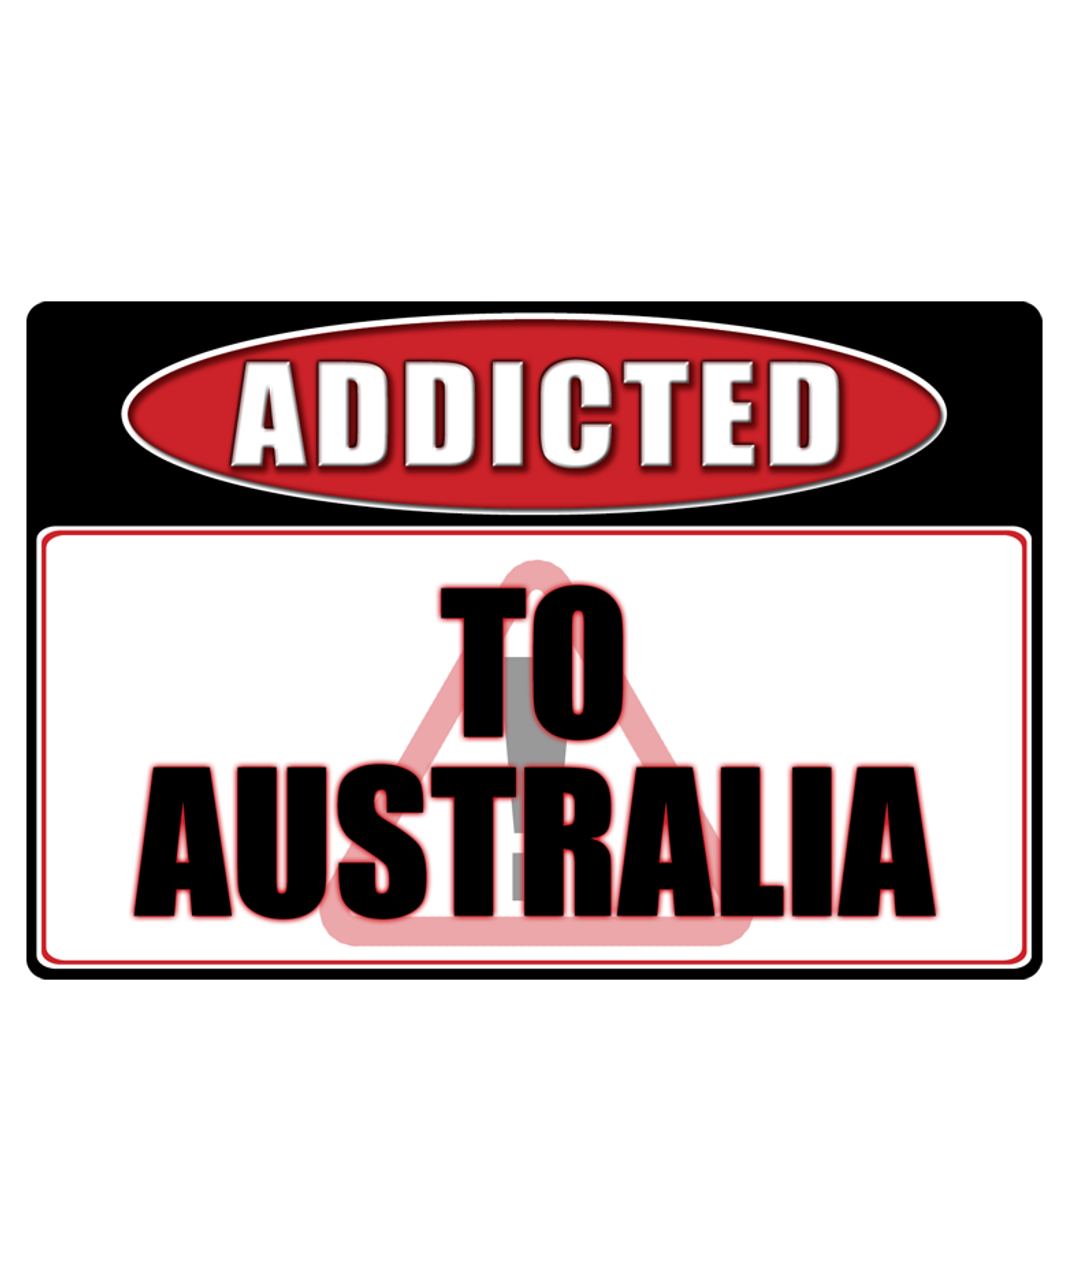 Addicted to online dating in Australia